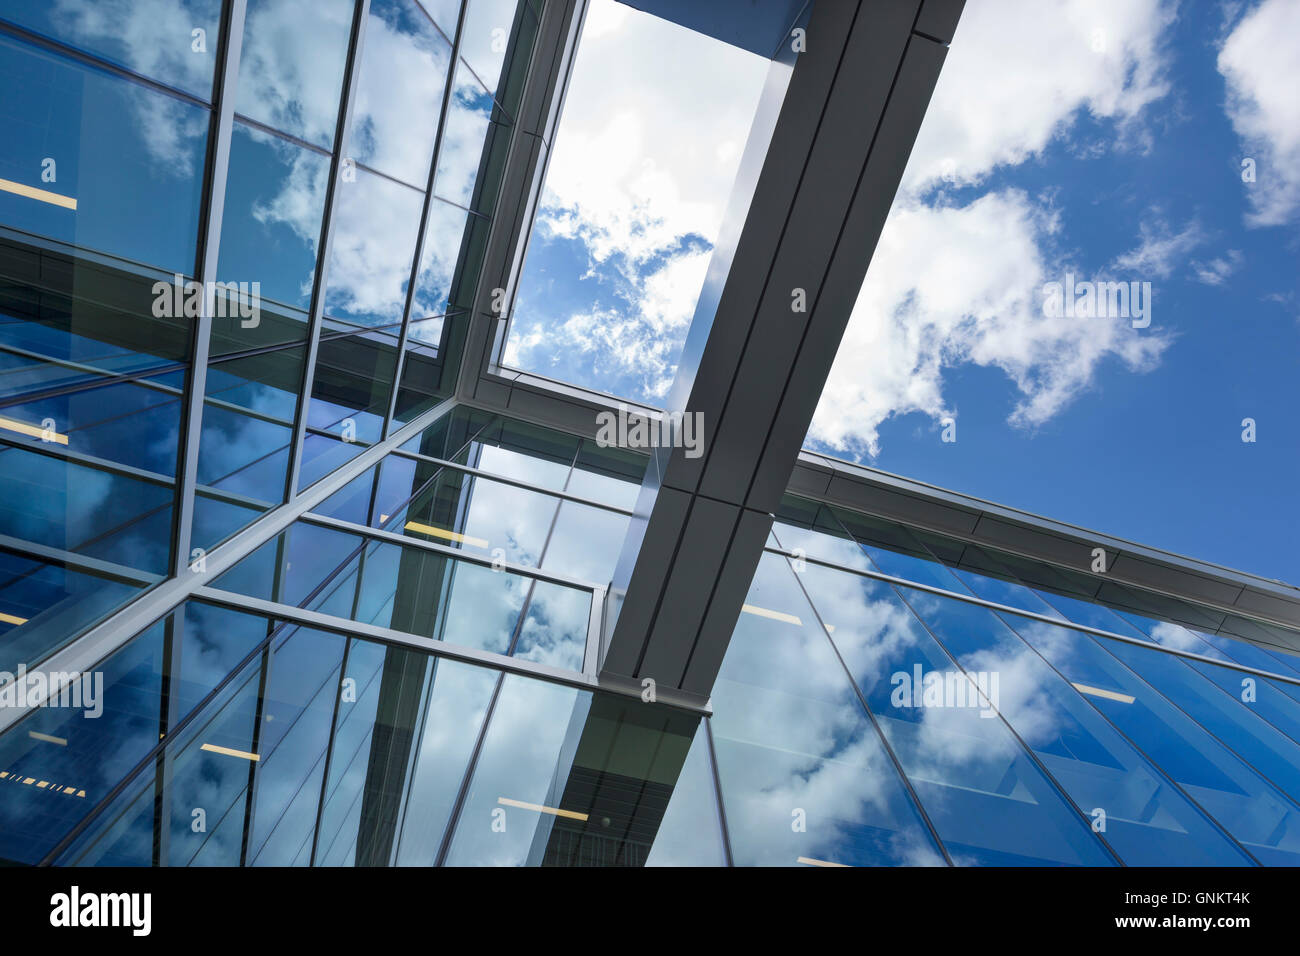 PUFFY WHITE CLOUDS BLUE SKY REFLECTED ON GLASS OFFICE BUILDING WINDOWS Stock Photo